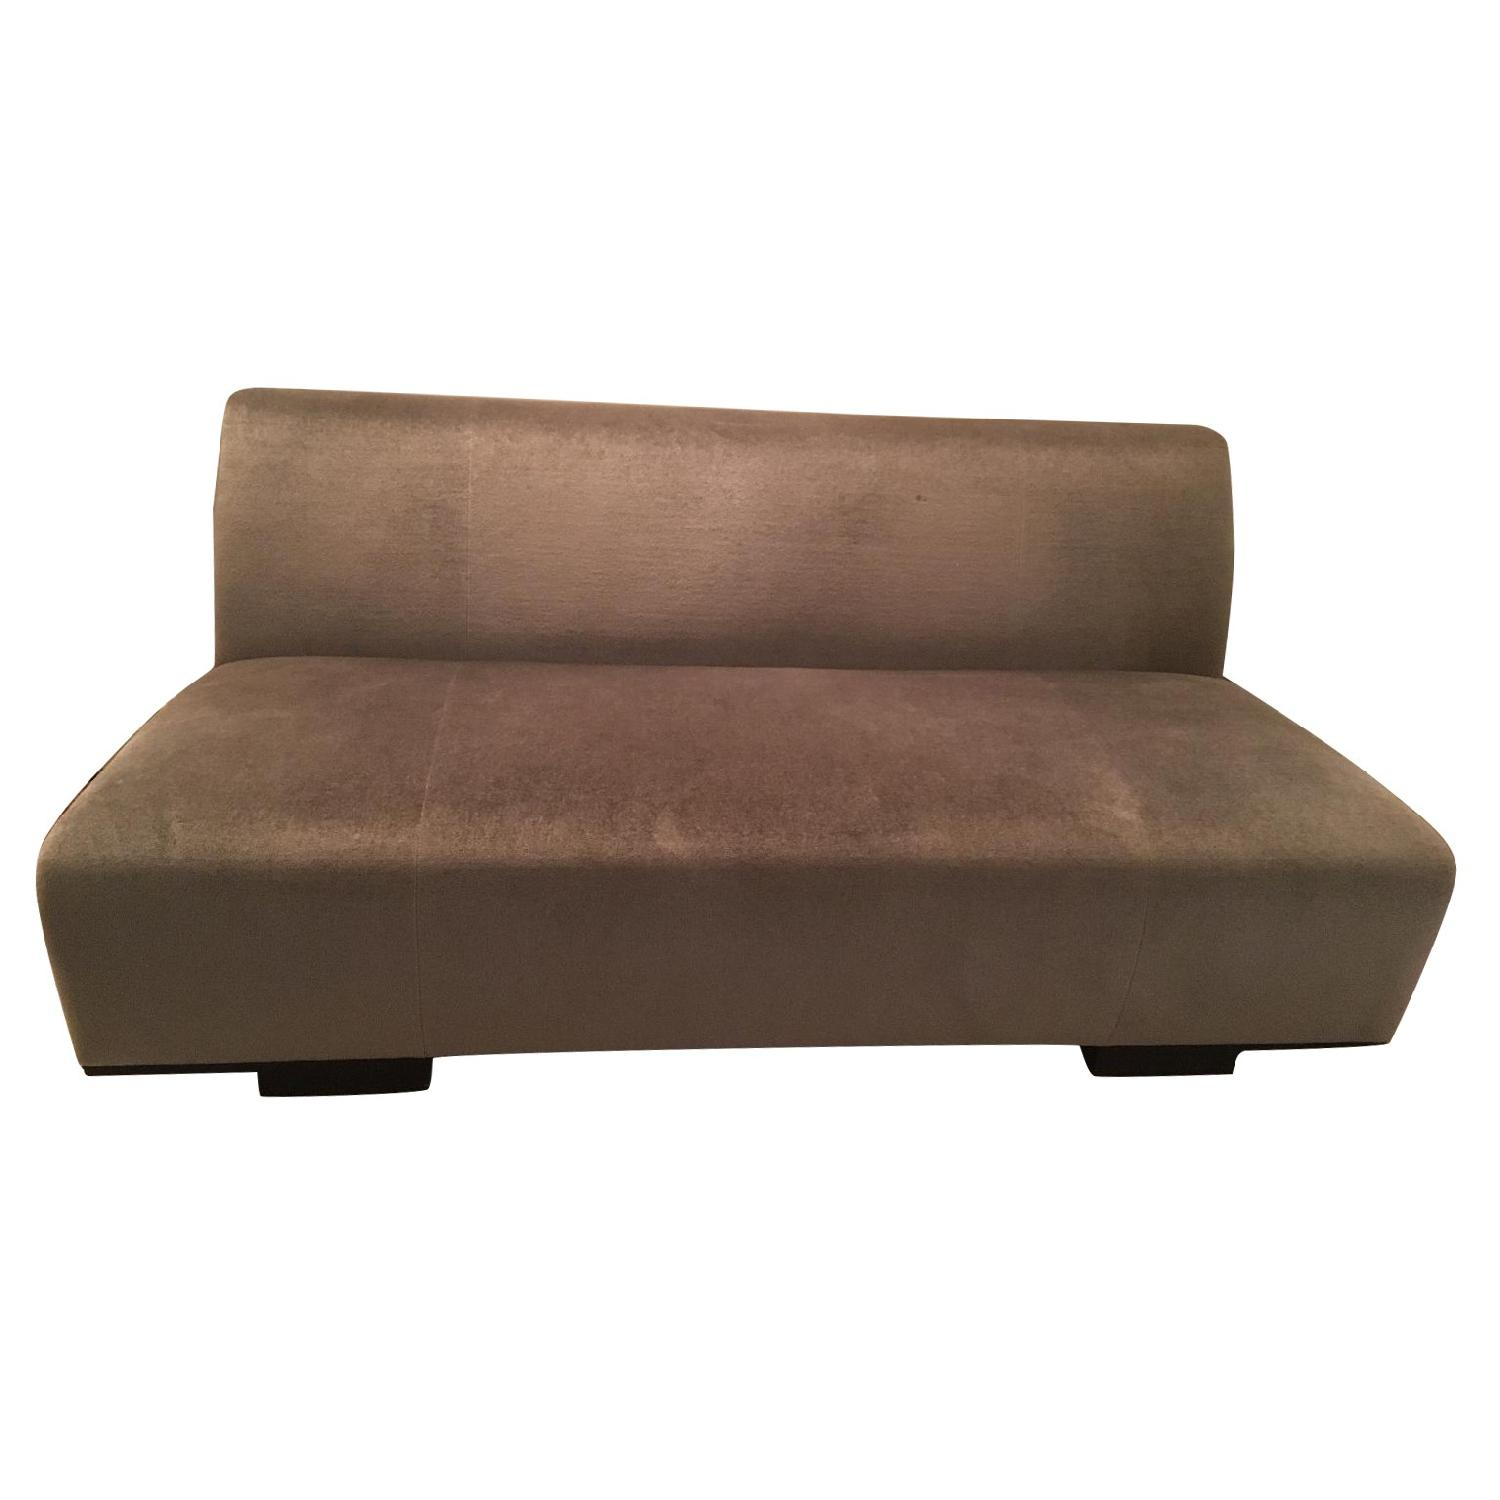 gray velvet sofa with nailheads leather spain holly hunt dark sectional w